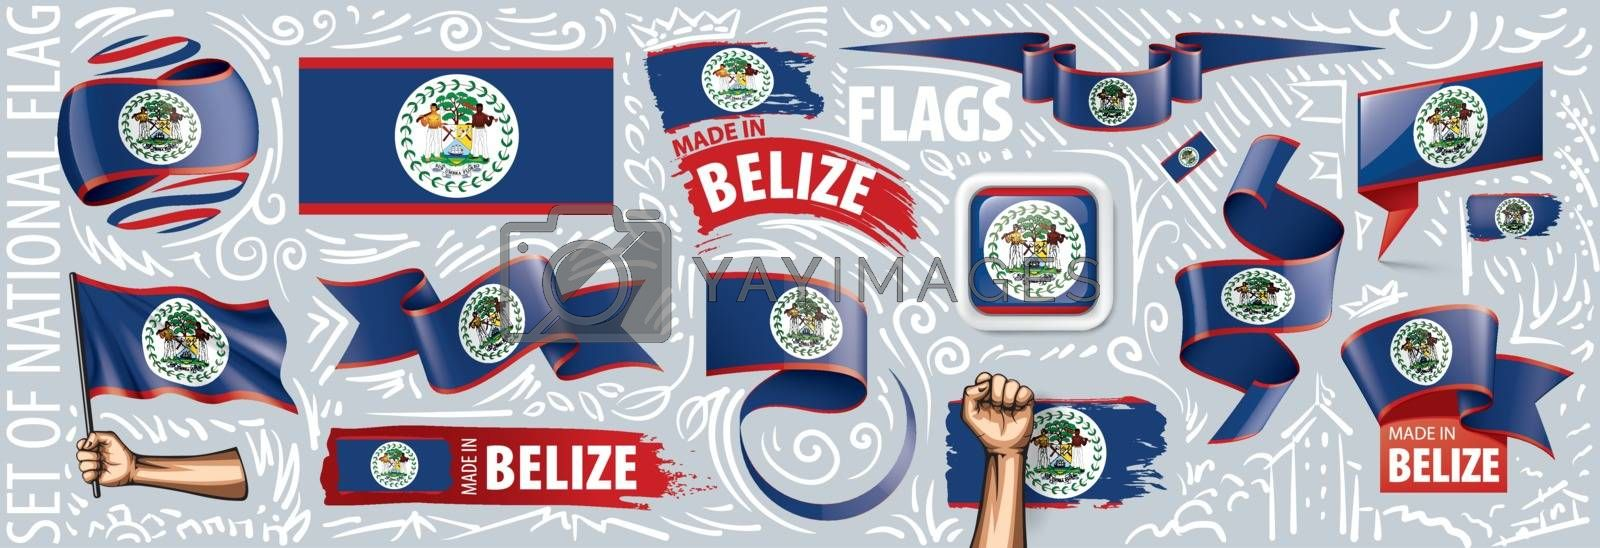 Vector set of the national flag of Belize in various creative designs.